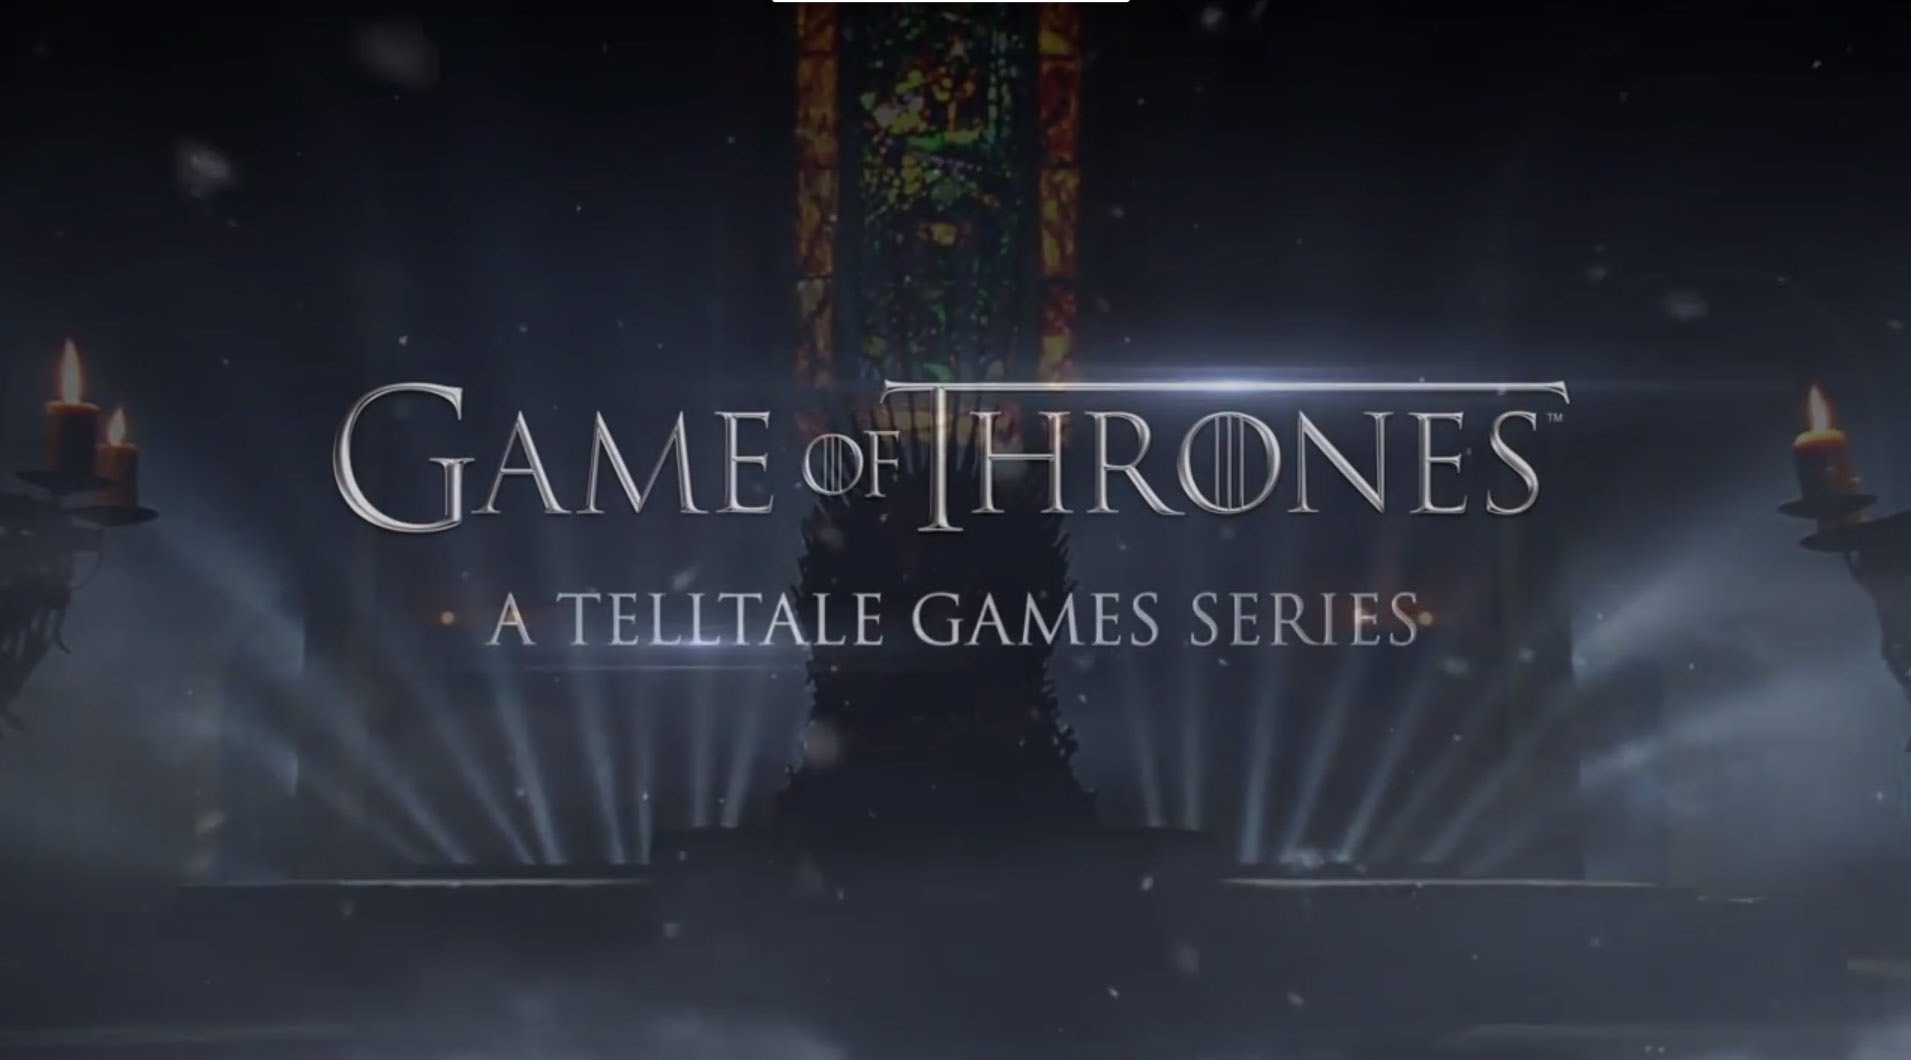 """  The music is excellent.  ""  -    Movie Pilot  on Game of Thrones: Iron From Ice    ""  Filling the role of composer once again is Telltale favorite Jared Emerson-Johnson, whose grandiose melodies and swelling orchestrations accompany players across the continent of Westeros. The show's familiar intro theme is reproduced here, but even before that, Emerson-Johnson's hauntingly ephemeral and ponderous opening provides a perfect gateway into the fantasy world, and his songs complemented the remainder of my journey without ever becoming overbearing. They consistently provide an aural backdrop for the sweeping kingdom full of knights, sellswords, and political schemes, while never actually sounding like background music.  ""  -    Adventure Gamers  on Game of Thrones: Iron From Ice    ""  Authentic. That's how   Game of Thrones sounds. While Ramin Djawadi's iconic theme is kept intact for the opening credits sequence, composer Jared Emerson-Johnson does a fine job of filling the gaps. All the horror and raw emotion of the show is replicated quite well. The voicework is faultless  .""  -    Game Vortex  on Game of Thrones: Iron From Ice    ""  There is plenty of original music mixed in that fits perfectly in place  .""  -    Tech Times  on Game of Thrones: Iron From Ice    ""  ...an excellent score by Jared Emerson-Johnson, which features an absolutely beautiful song sung in-game to close out the episode ."" -  Push Square     on Game of Thrones: The Lost Lords     ""  The music is often atmospheric and emotional, designed to immerse players in the drama of the moment  .""   -  Tom's Guide    on Game of Thrones: The Lost Lords        ""  The audio design is superb, especially one haunting song that plays toward the end of the episode  .""   -  Cheat Code Central    on Game of Thrones: The Lost Lords    ""  Muy buena banda sonora..  .""   -  MeriStation    on Game of Thrones: The Sword in the Darkness     ""  Its score, written by Jared Emerson-Johnson, is very medieval, fitting in nicely with the worlds and villages you come across in the series. A great soundtrack places you into the surroundings with ease, and Johnson   [  sic  ] has quite the knack to do that with just about any video game he's scored.  ""   -  Electronic Gaming Monthly    on Game of Thrones: The Sword in the Darkness     ""  Jared Emerson-Johnson's supporting score is a [ sic ] strong as ever.  ""   -  Push Square    on Game of Thrones: A Nest of Vipers"